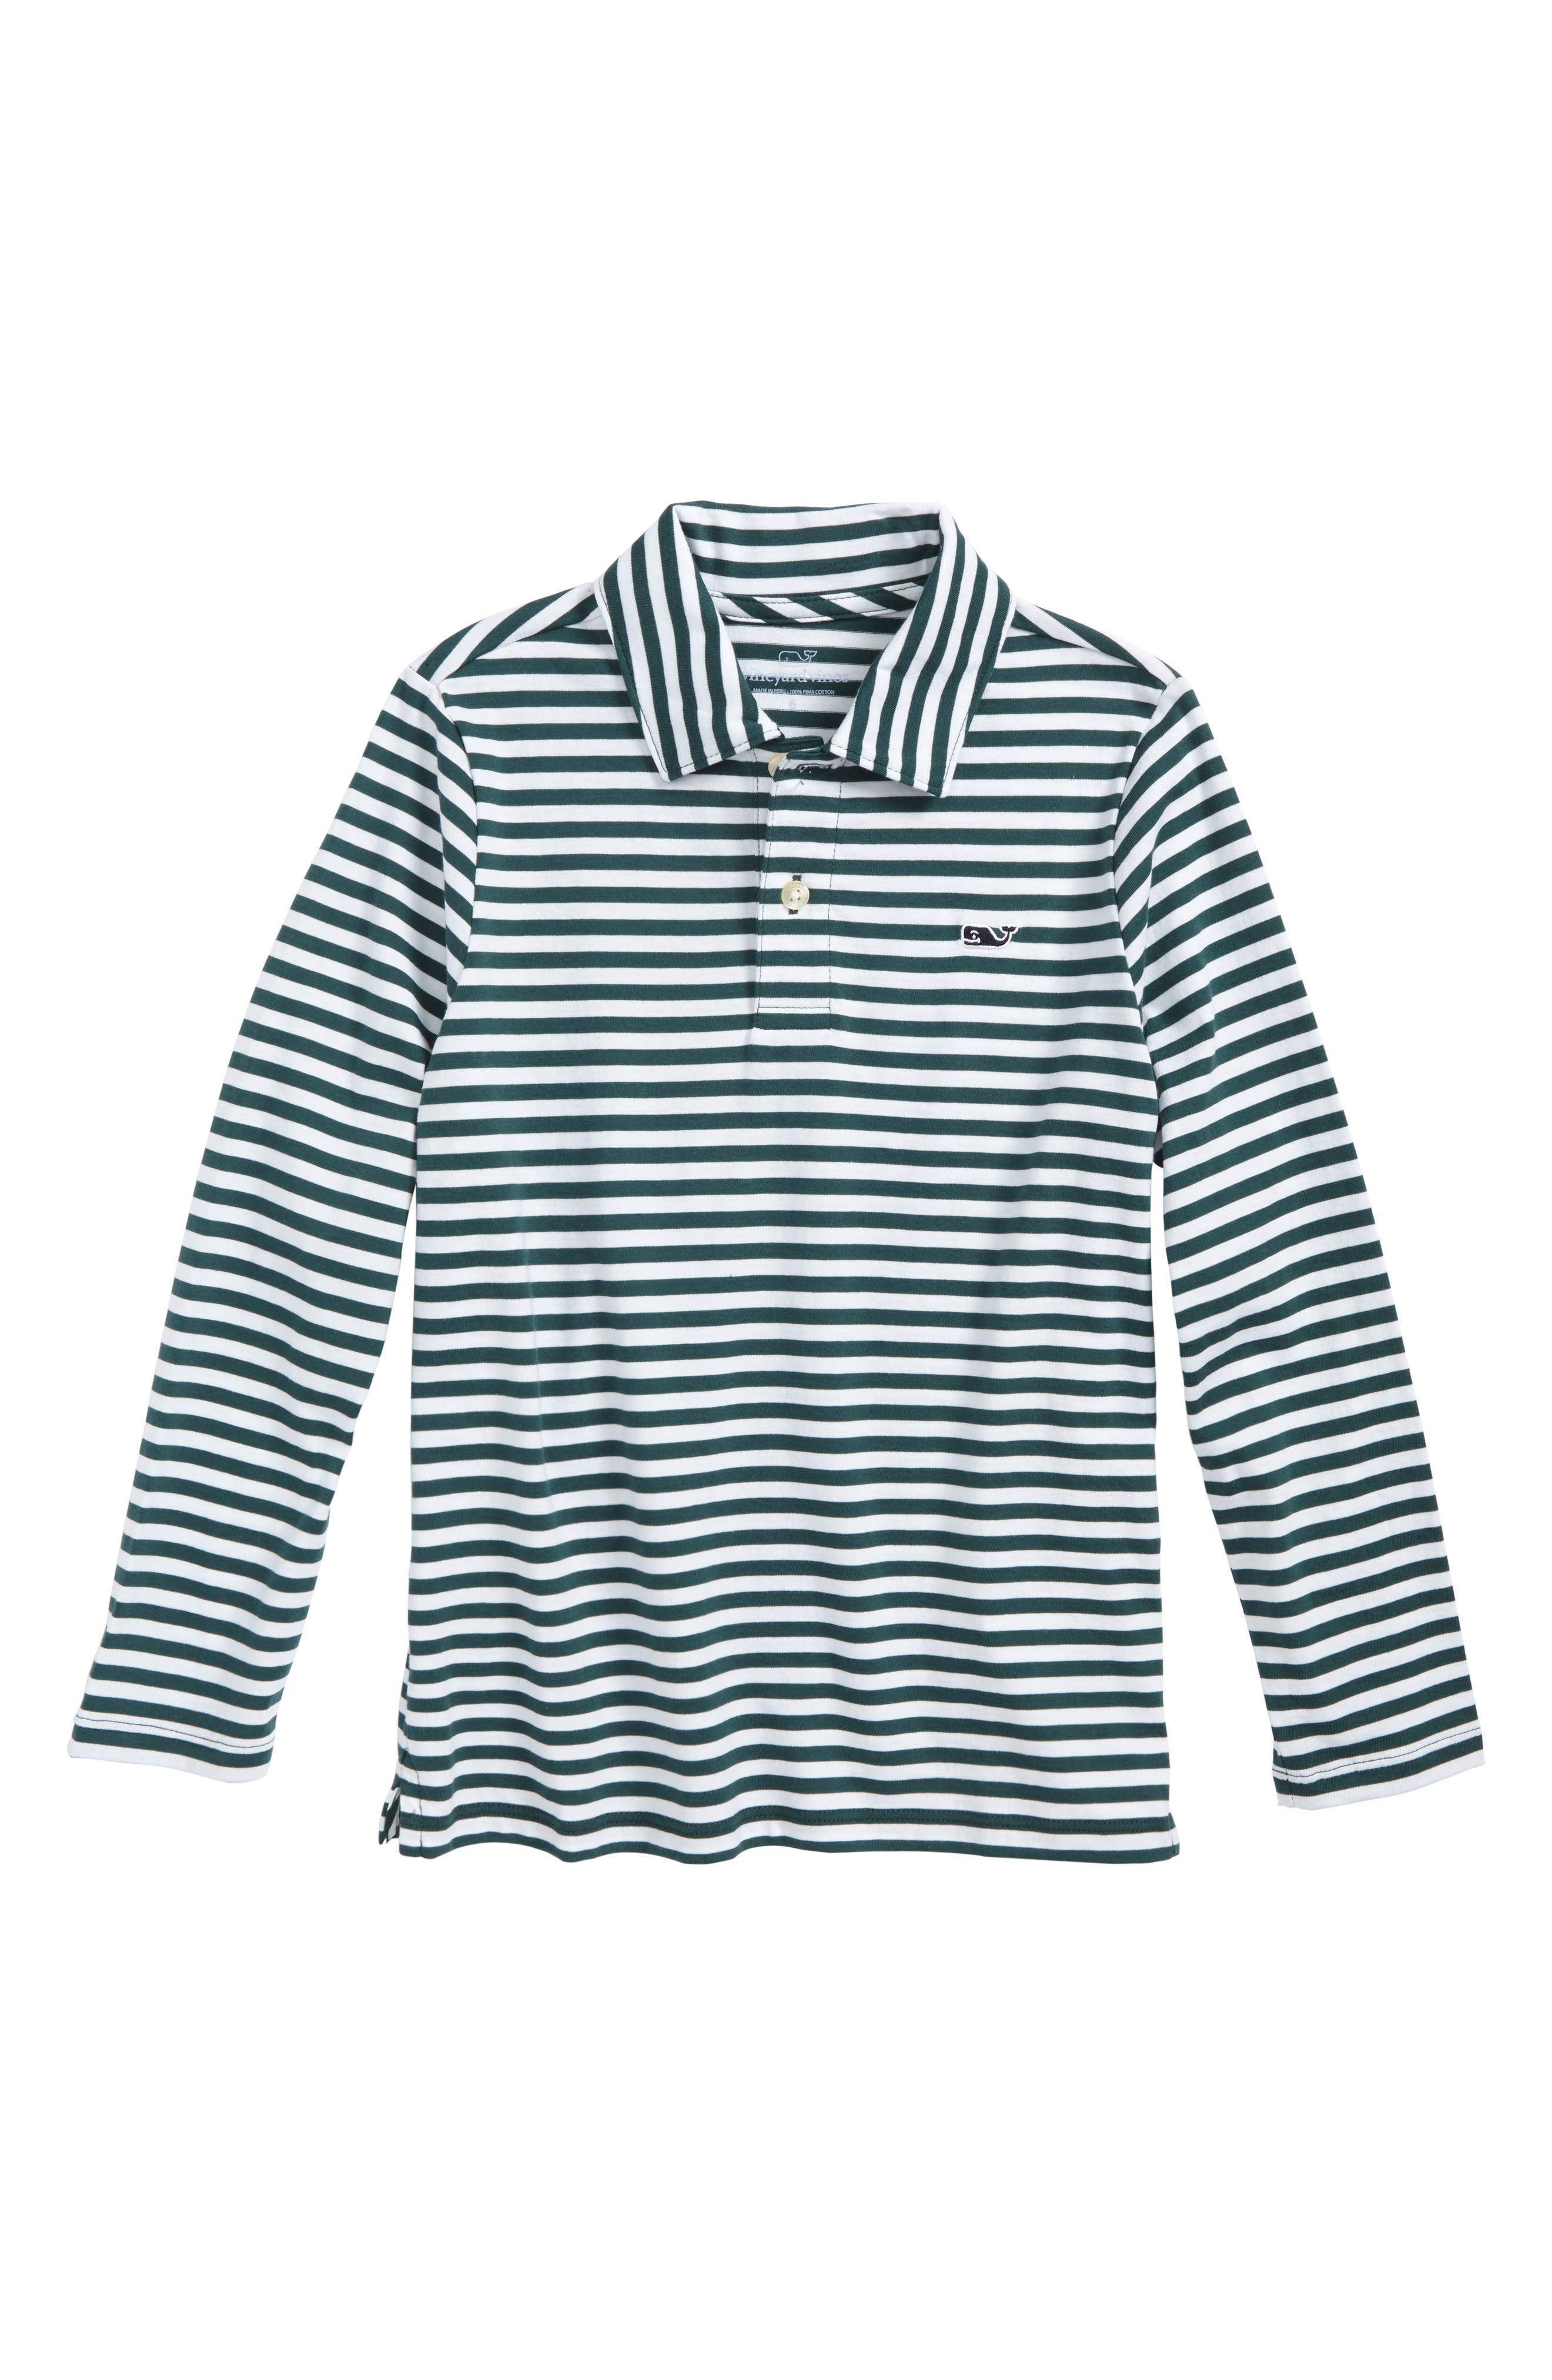 vineyard vines Stripe Pima Cotton Jersey Polo (Toddler Boys & Little Boys)